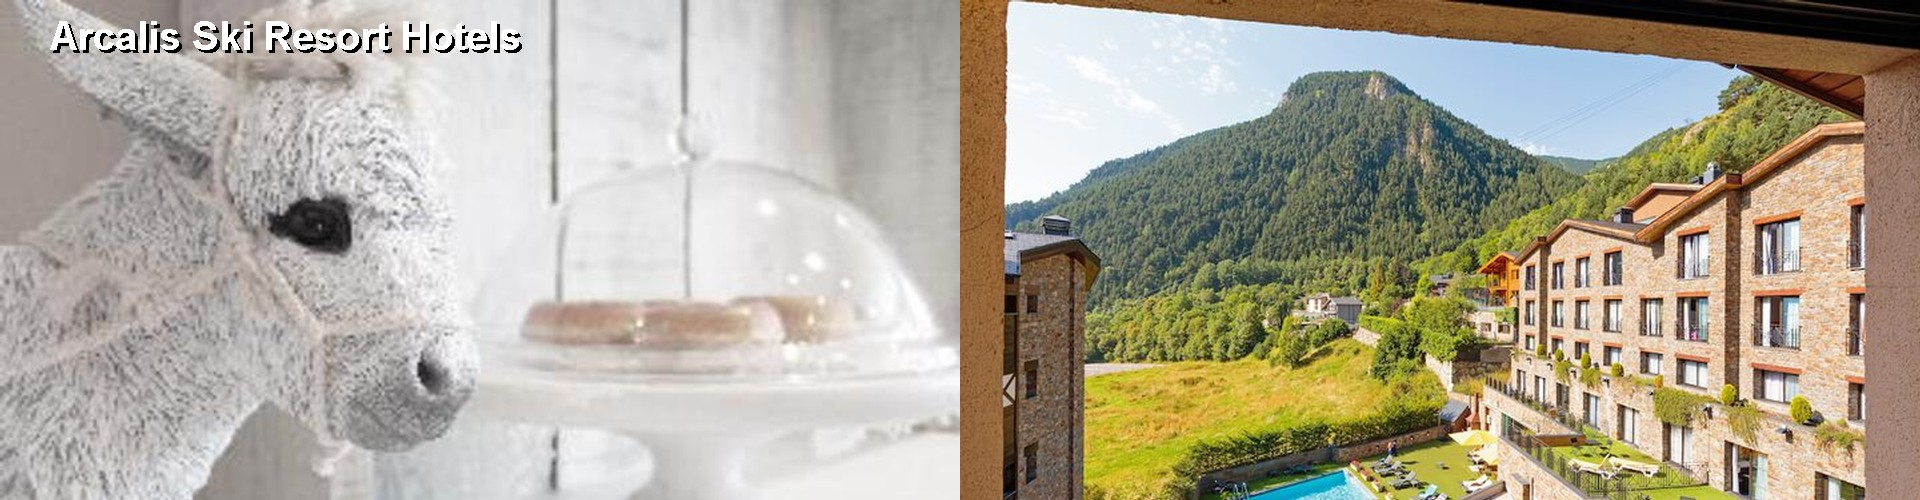 5 Best Hotels near Arcalis Ski Resort